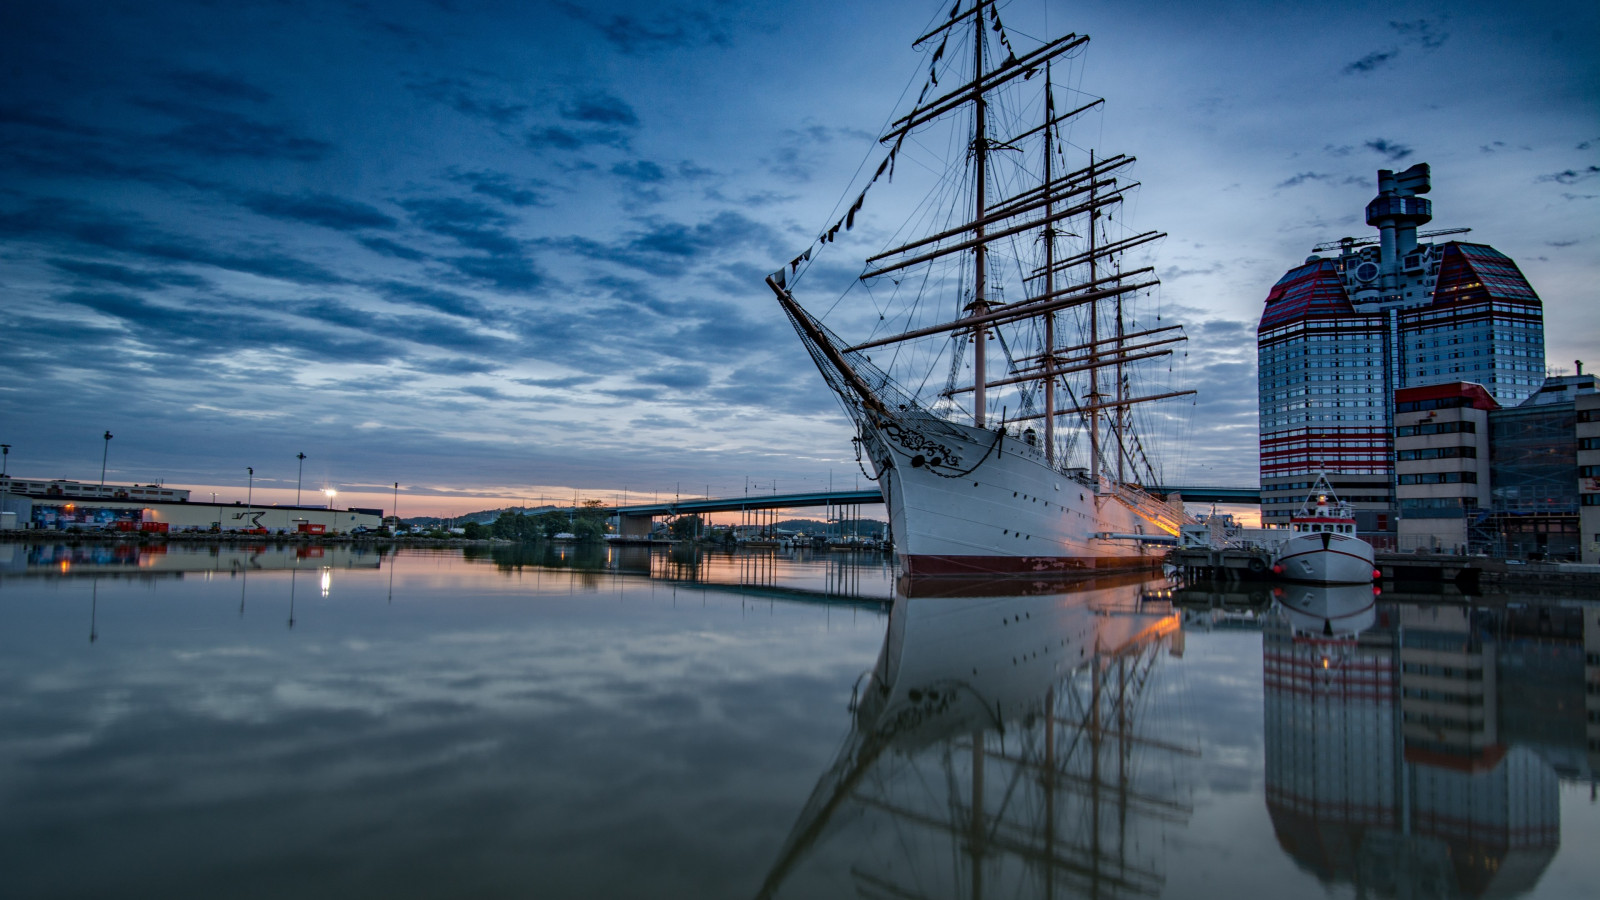 Historic wooden sailing ship in Gothenburg Harbour wallpaper 1600x900